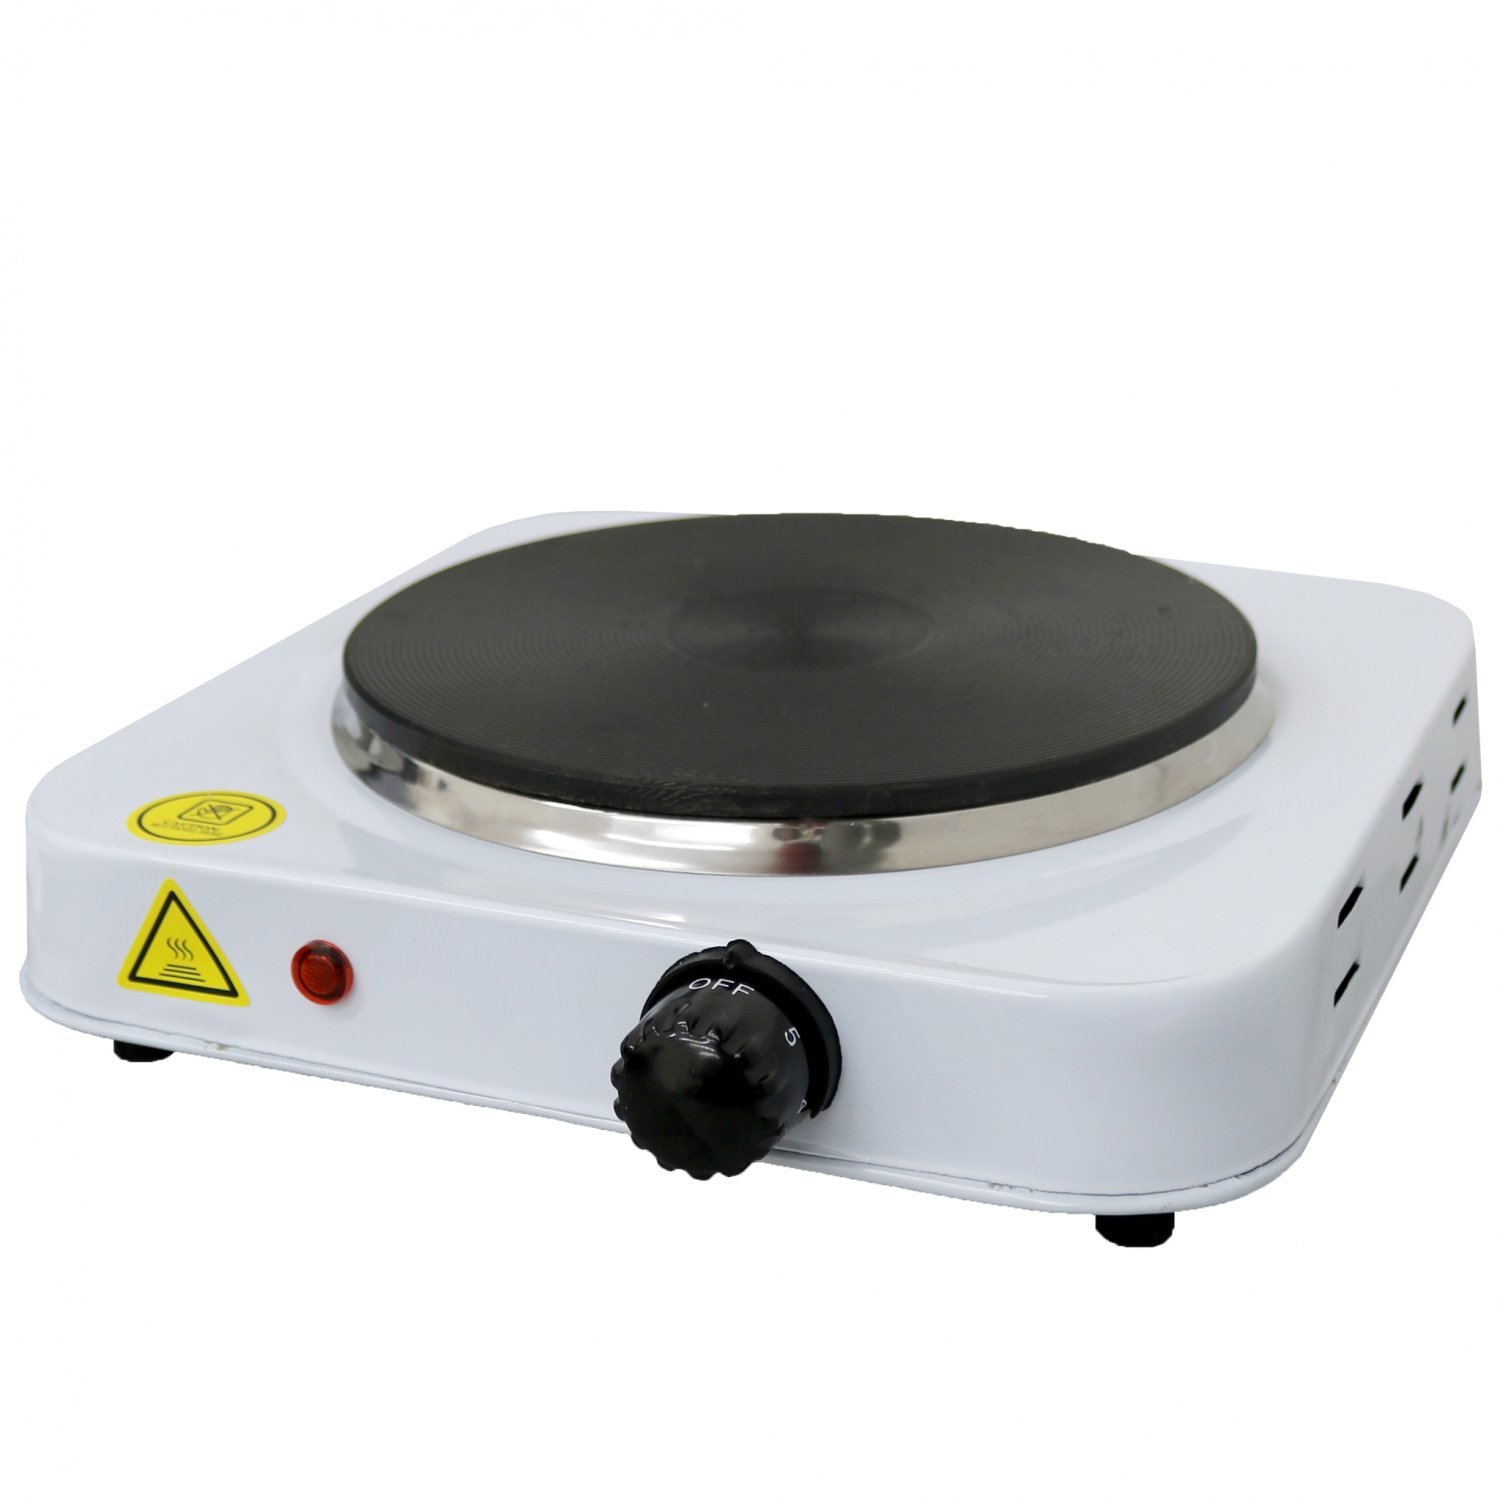 1 5kw Electric Portable Kitchen Hot Plate 163 12 99 Oypla